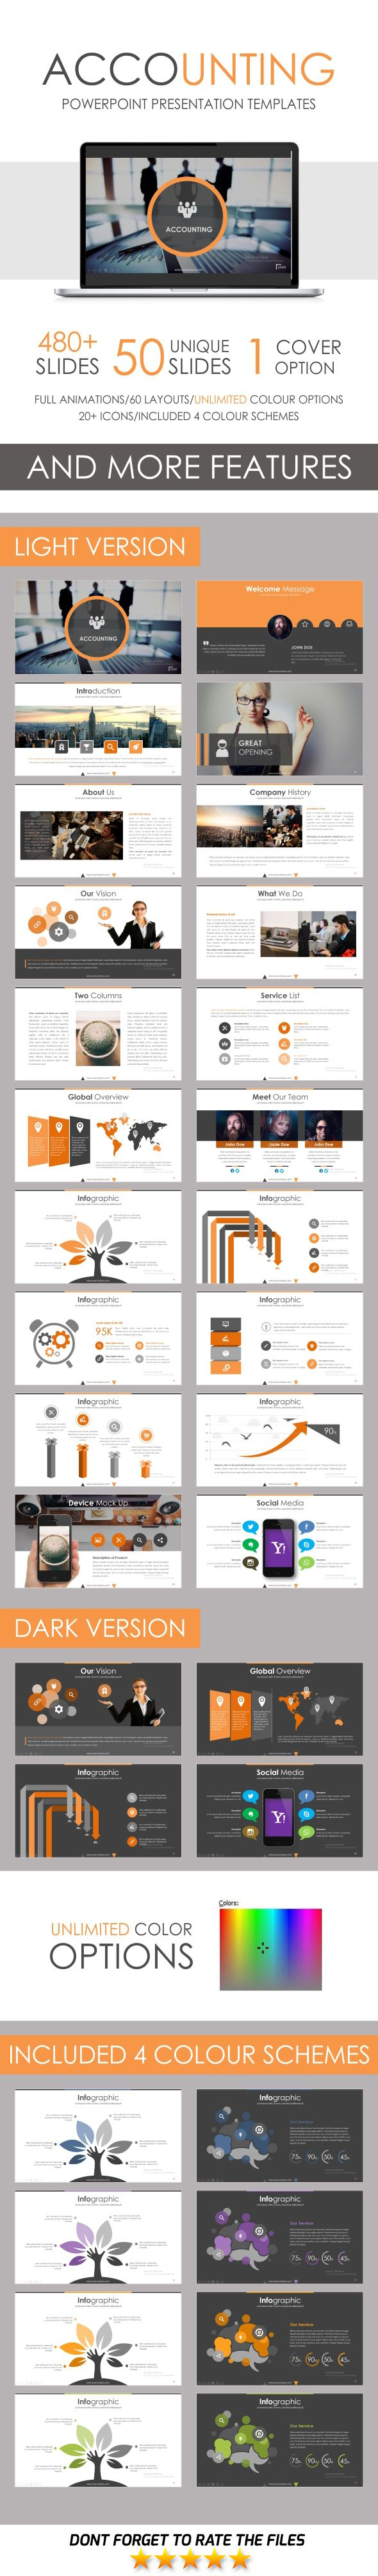 pin by best graphic design on powerpoint templates